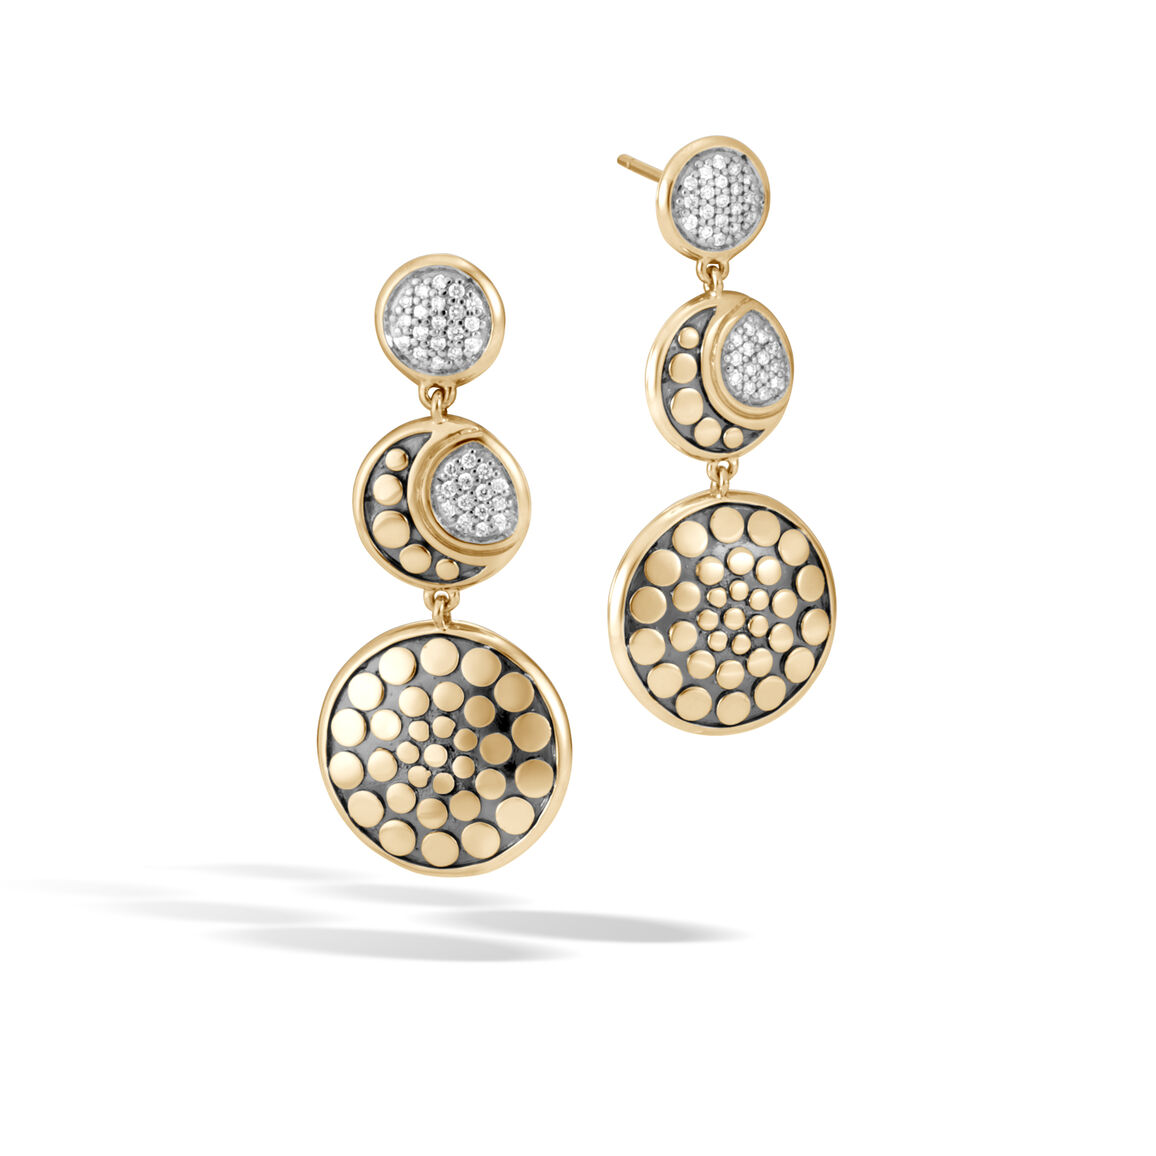 Dot Moon Phase Drop Earring in 18K Gold with Diamonds